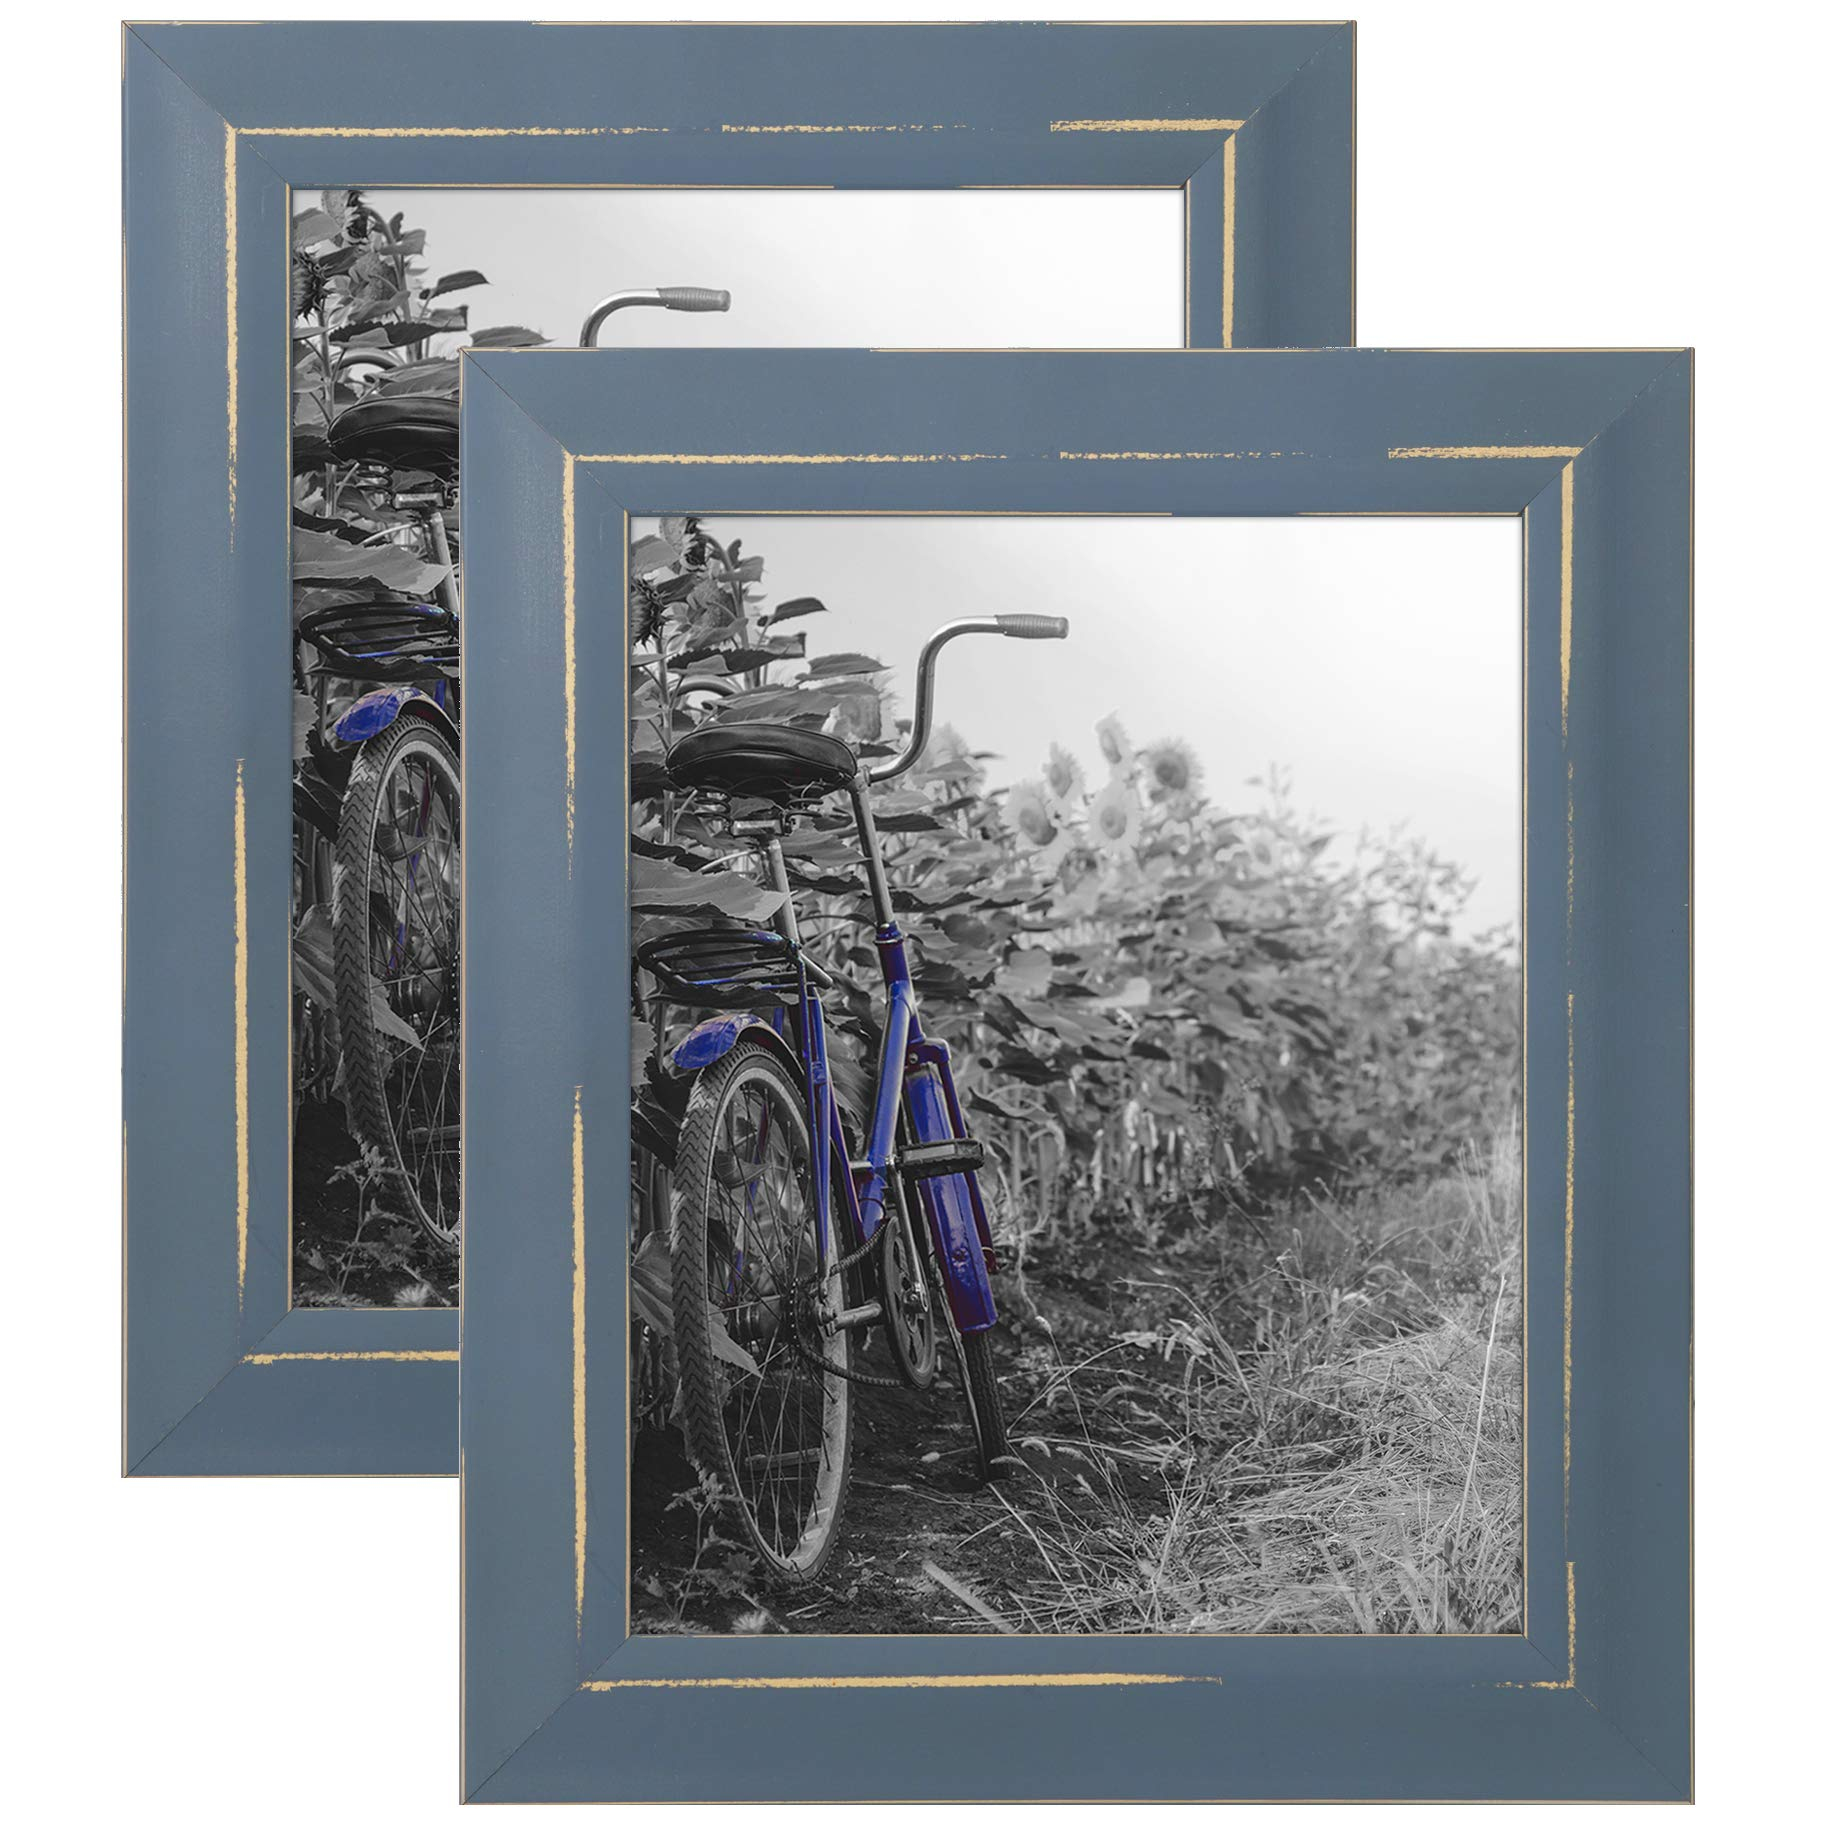 Americanflat 2 Pack - 8x10 Blue Rustic Picture Frames Easels - Made Wall Tabletop Display by Americanflat